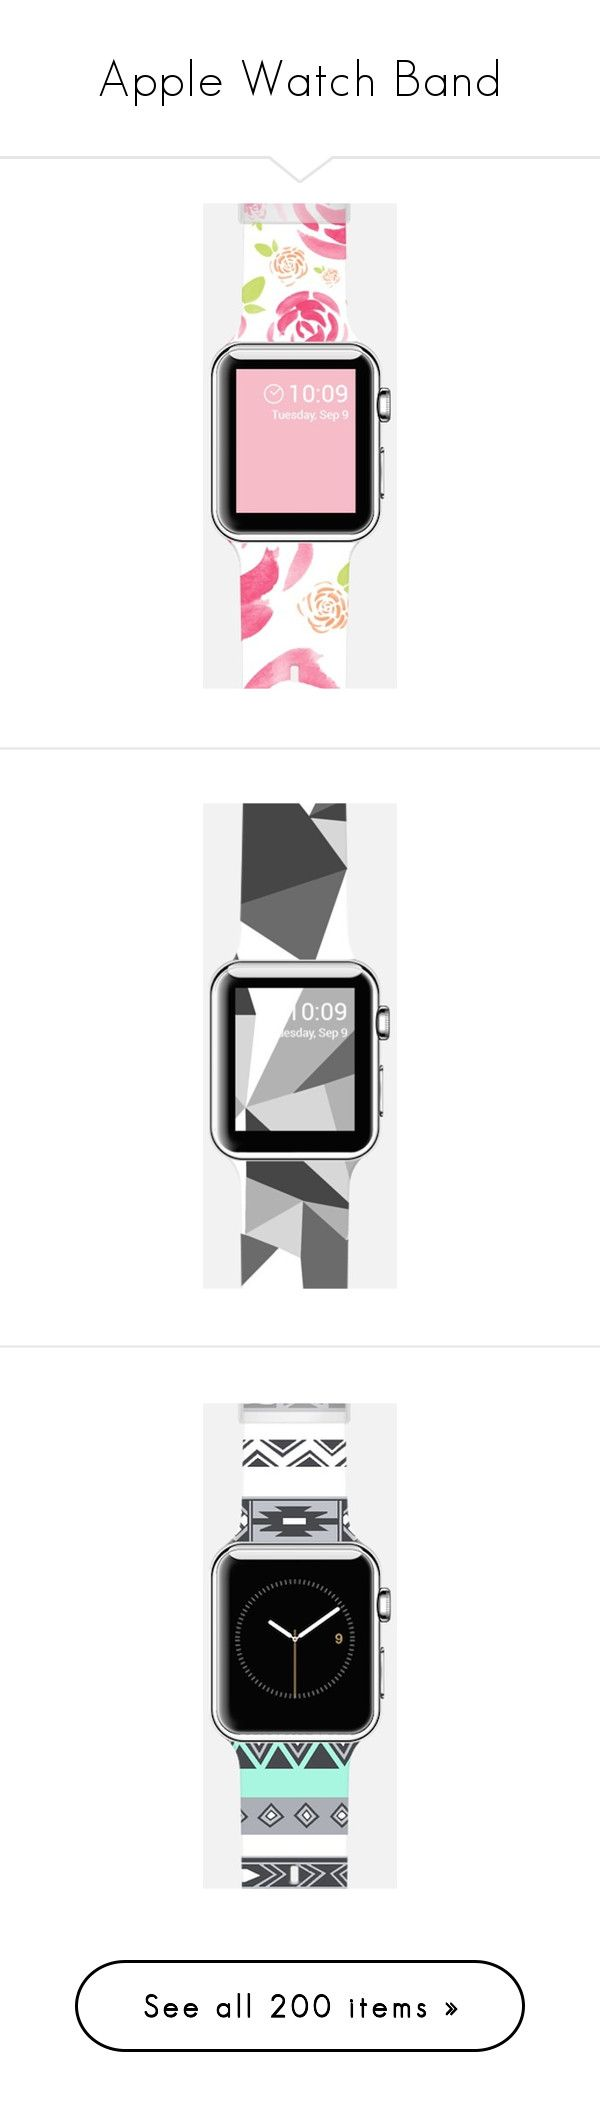 """""""Apple Watch Band"""" by casetify ❤ liked on Polyvore featuring jewelry, watches, rose watches, apple wrist watch, apple watches, rose jewelry, black and white jewelry, black and white watches, abstract jewelry and bohemian turquoise jewelry"""